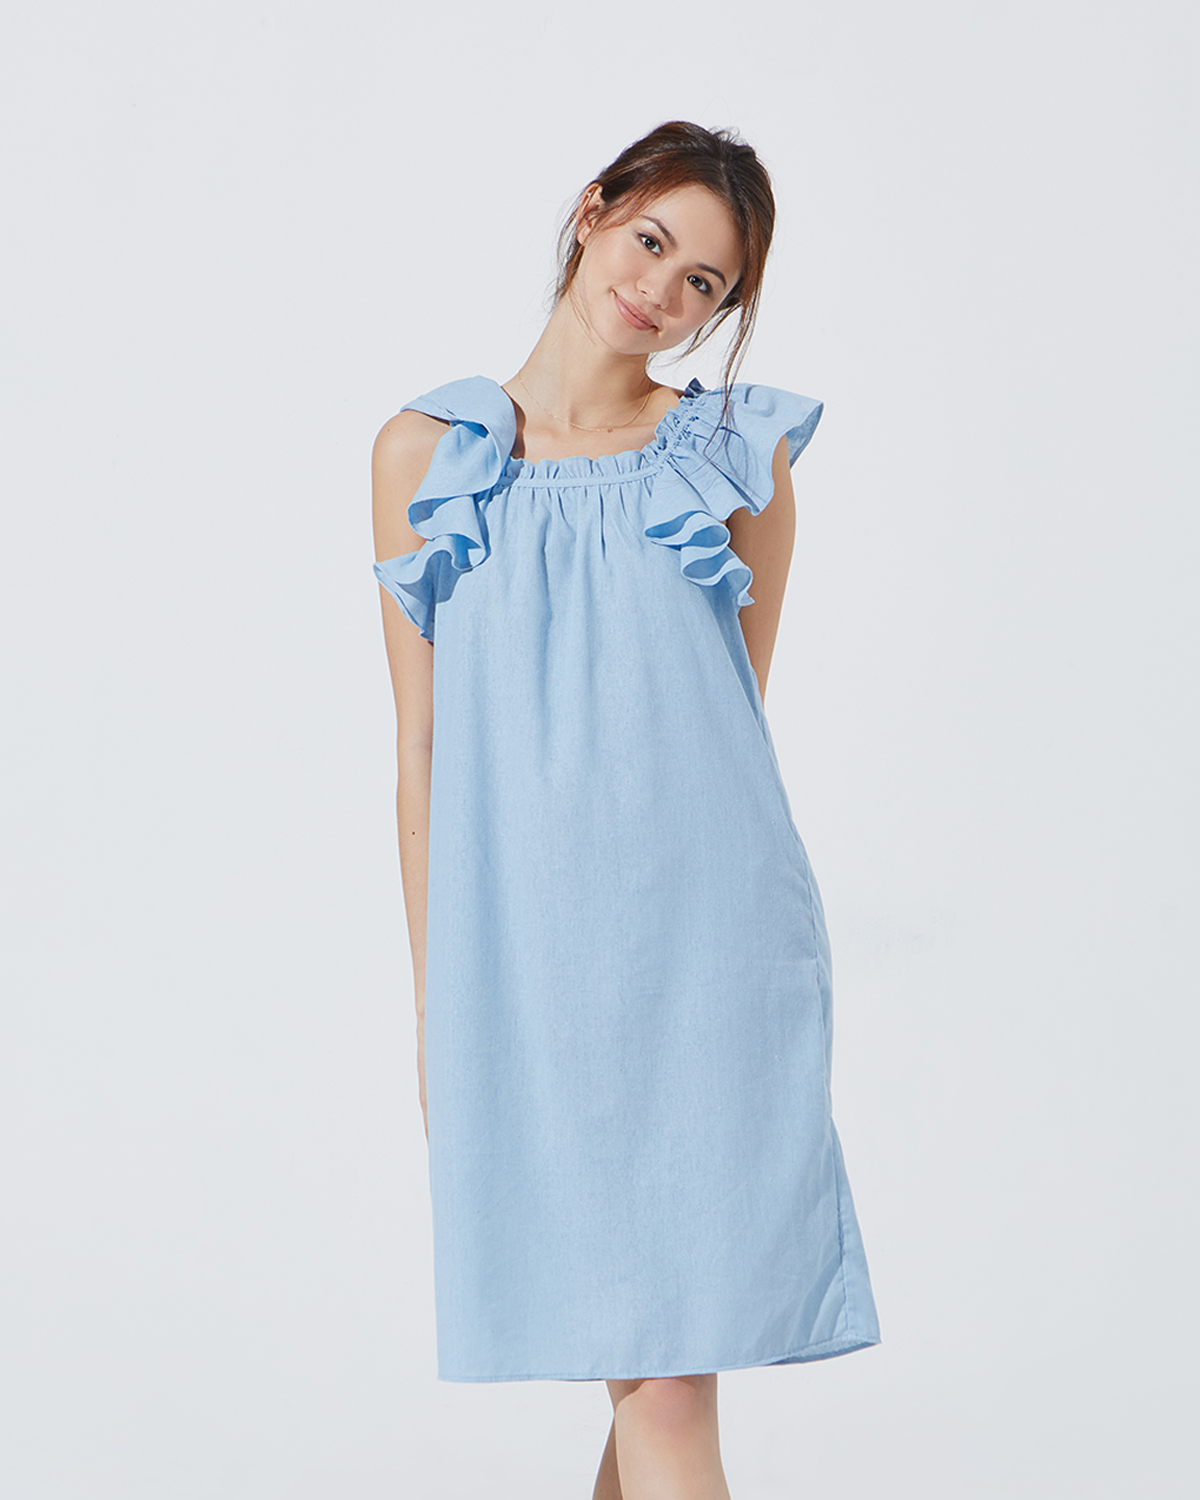 When-in-Greece Home Dress